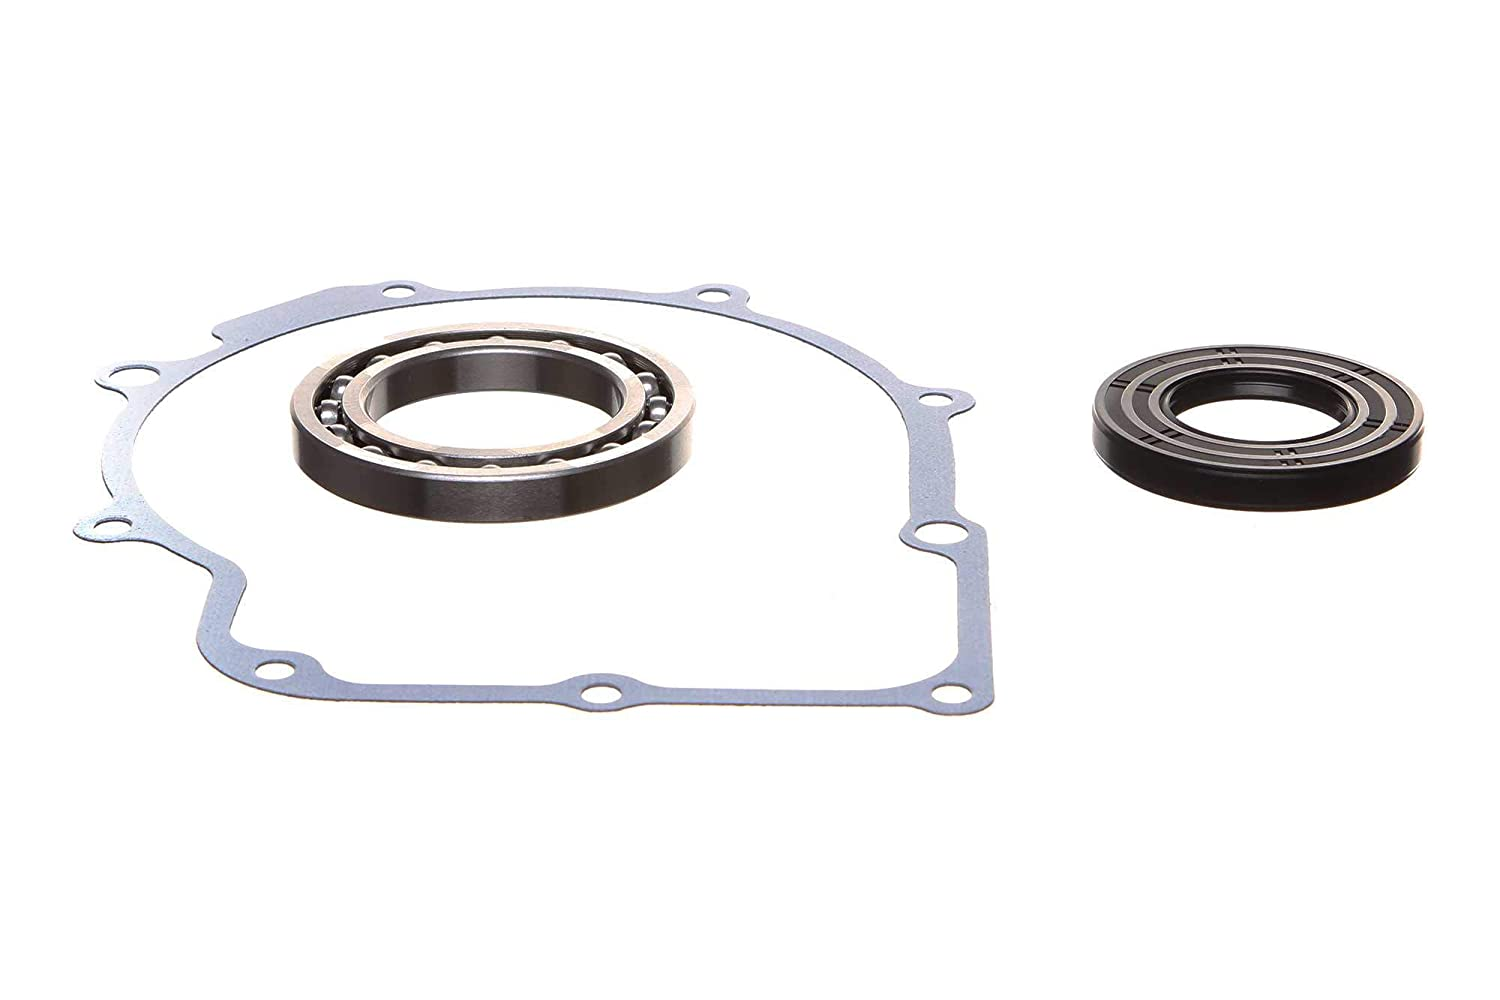 Brand fits Yamaha Clutch Crankcase Outer Cover Gasket Bearing /& Seal Kit for 550 /& 700 Rhino Grizzly /& Viking REPLACEMENTKITS.COM